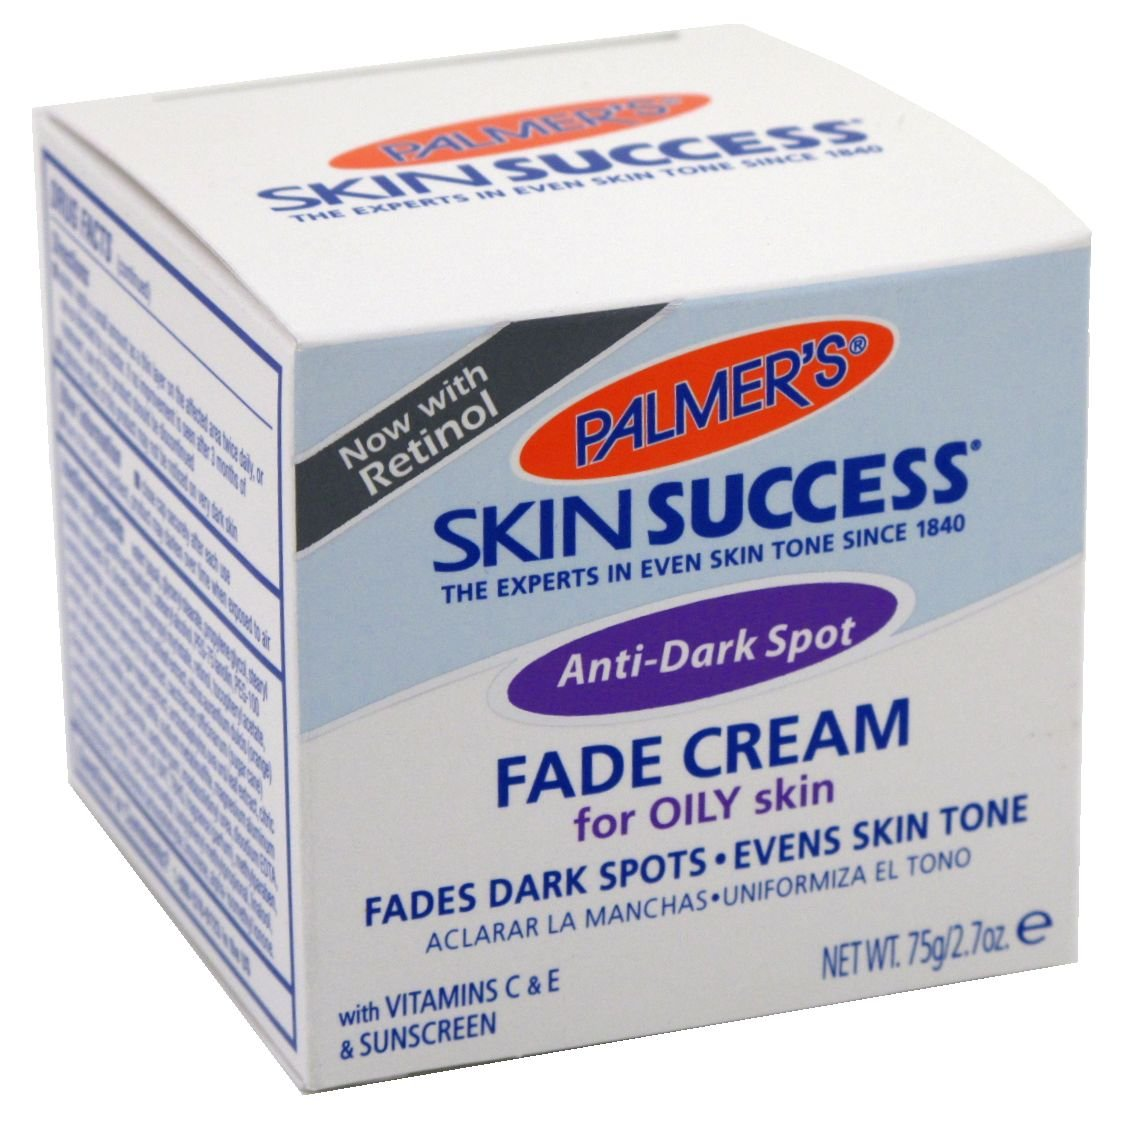 Palmers Anti-Dark Spot Fade Cream Oily Skin 2.7oz Jar (6 Pack)